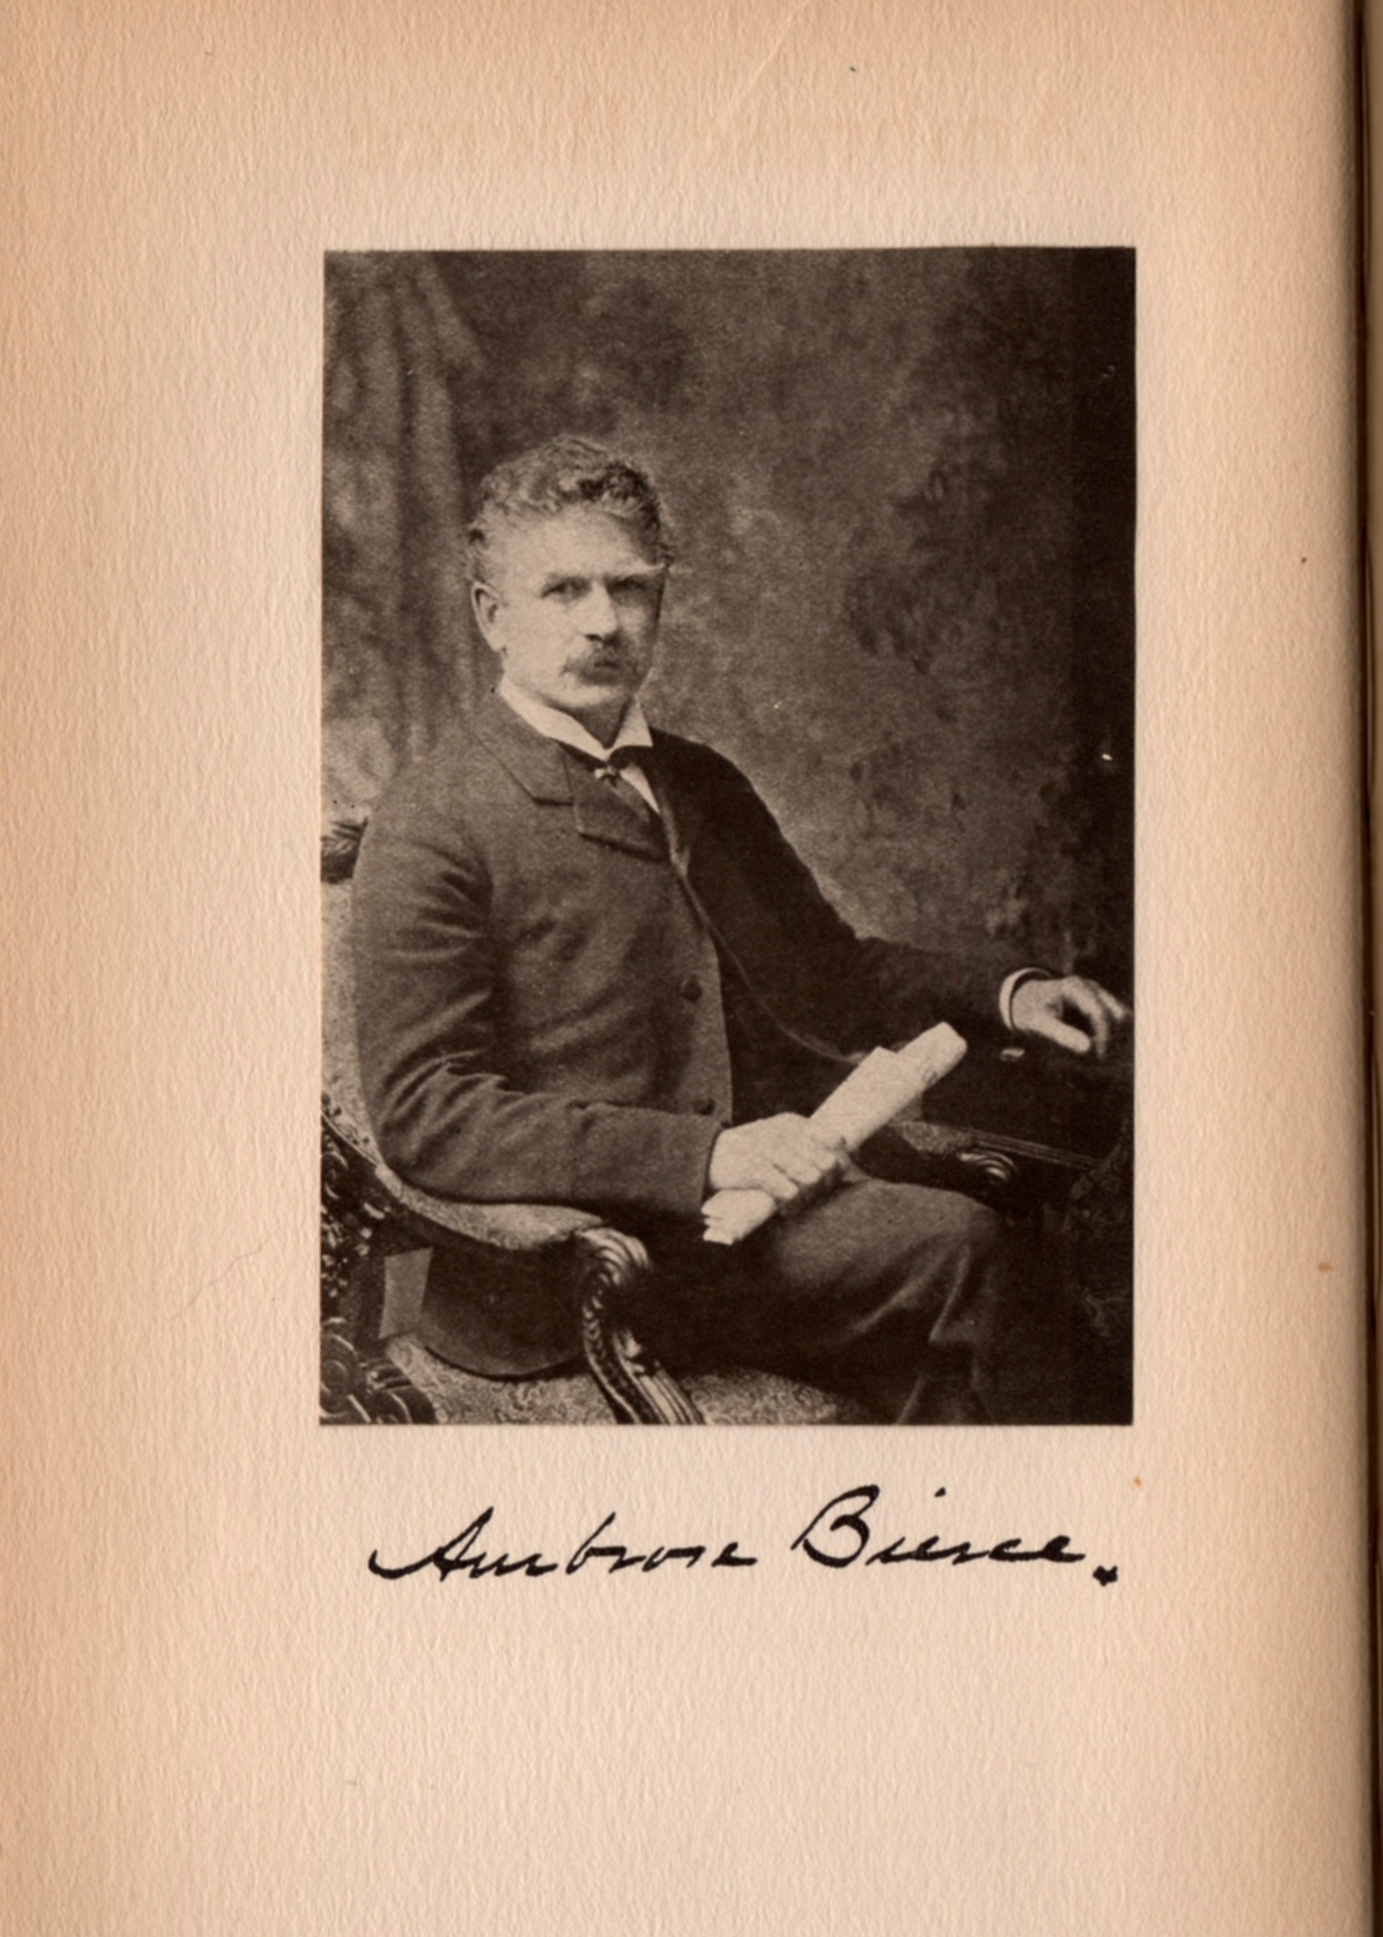 A portrait of Ambrose Bierce from Vincent Starrett's 1920 booklet of the same name.